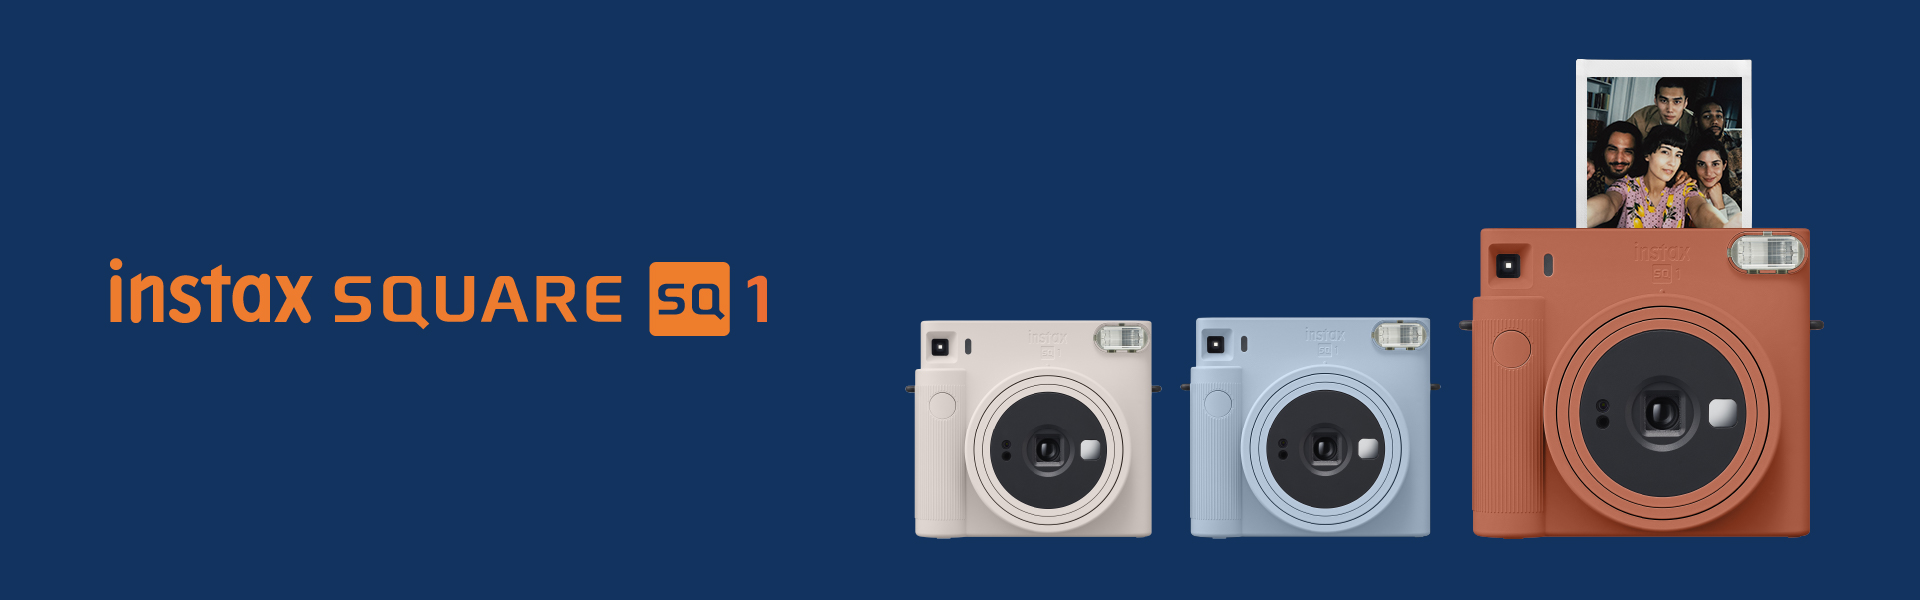 [image] 3 INSTAX Square SQ1 cameras next to each other, in Chalk White, Terracotta Orange, and Glacier Blue colors